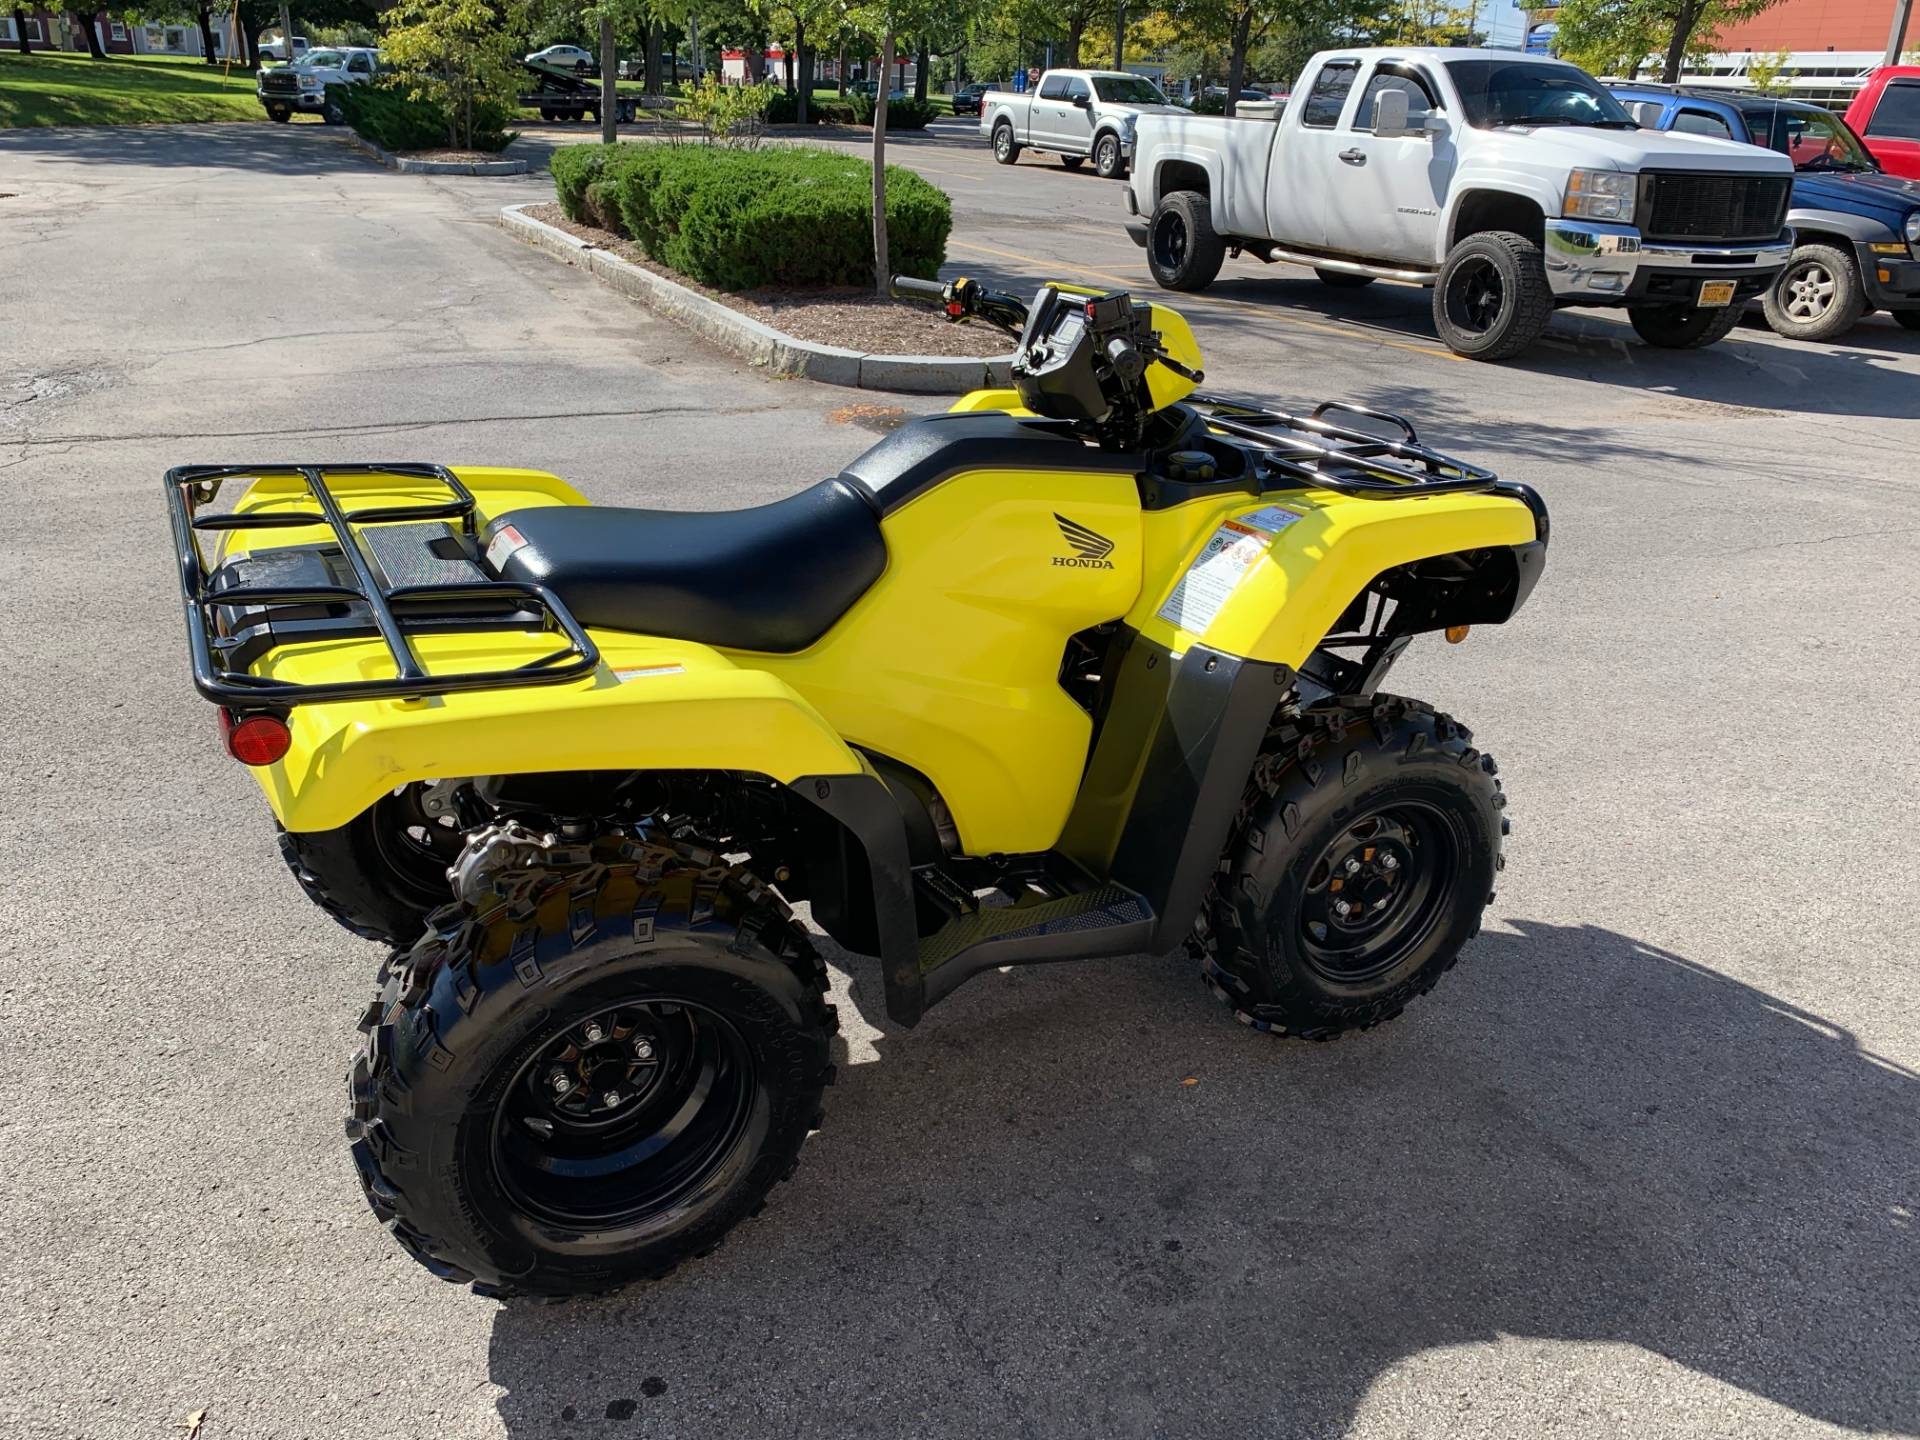 2019 Honda FourTrax Foreman 4x4 in Herkimer, New York - Photo 7